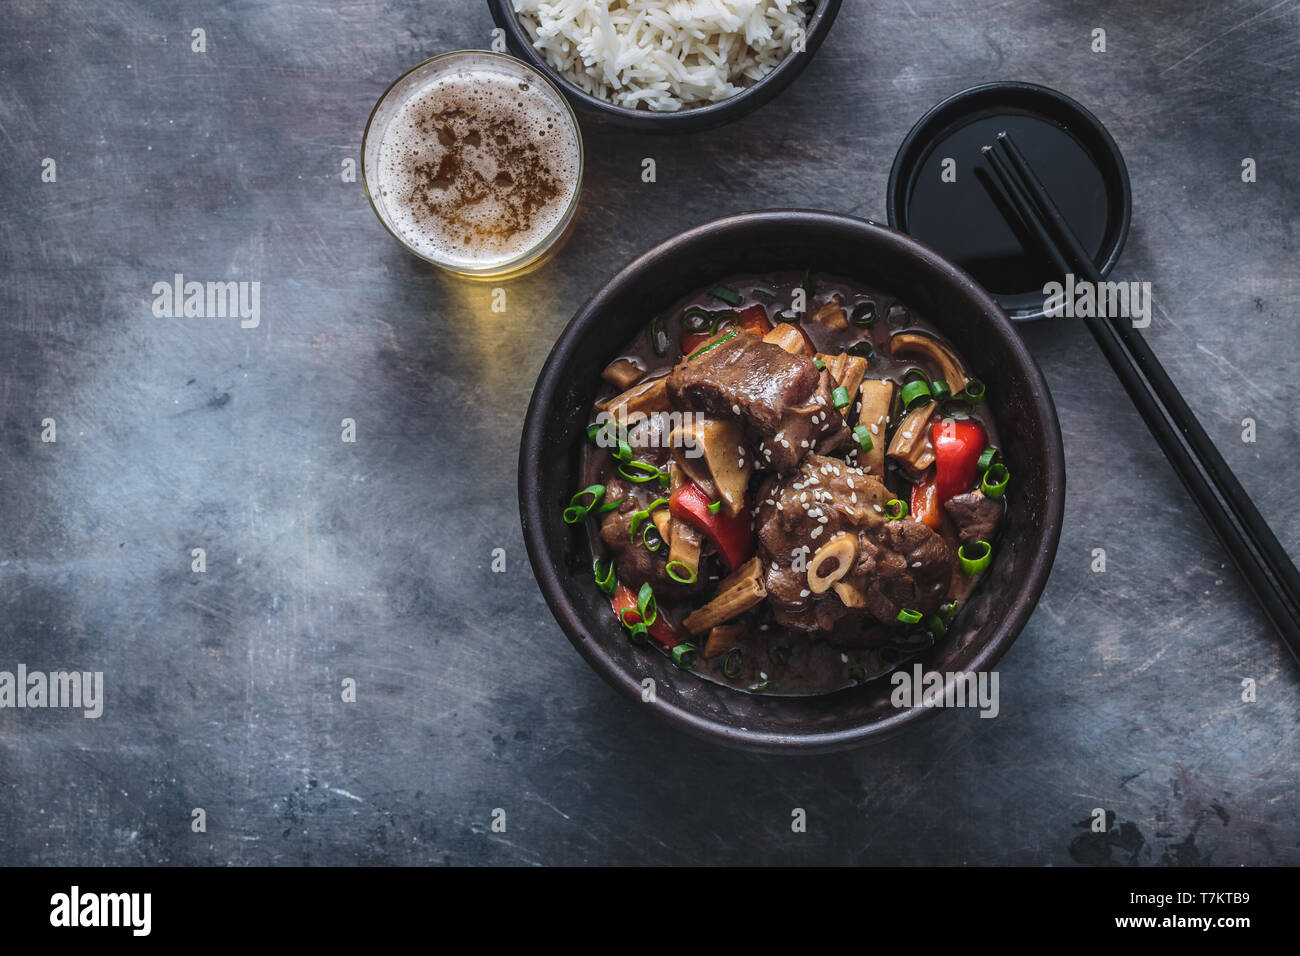 Asian lamb stew in a pot, top view copy space - Stock Image